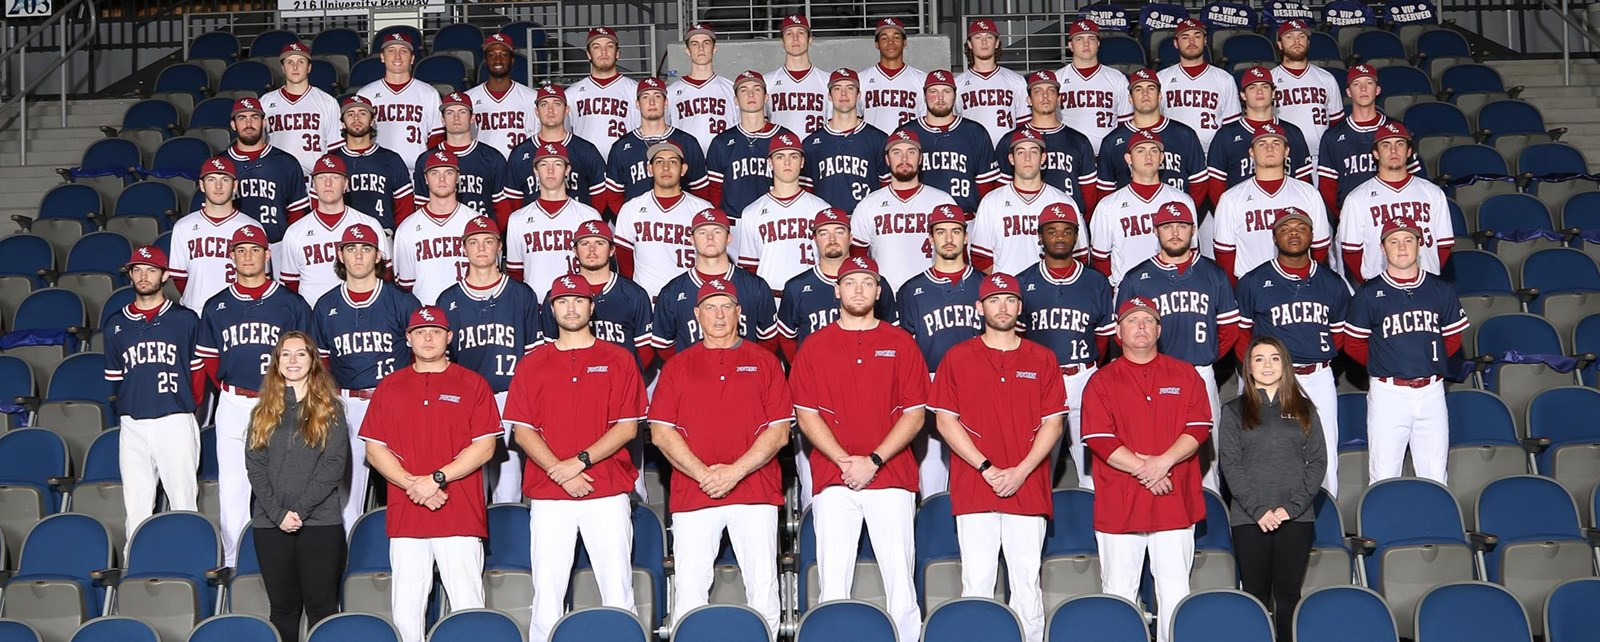 Usc Baseball Schedule 2020 2019 Baseball Roster   University of South Carolina Aiken Athletics